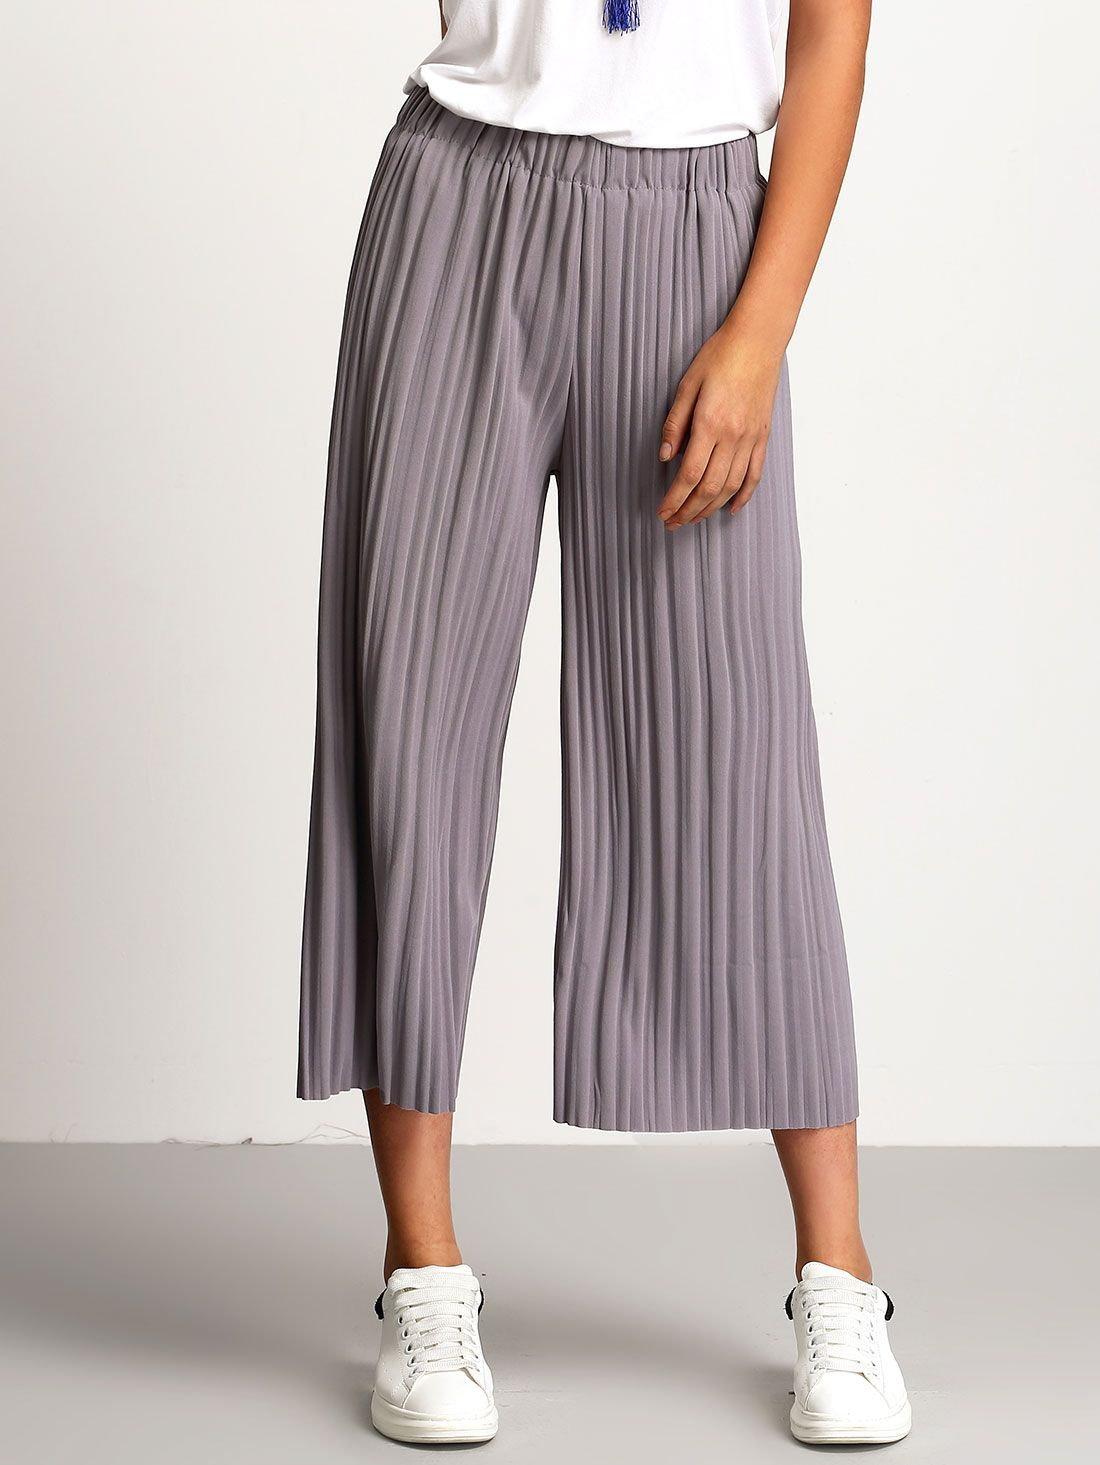 5bc192089a Shop Grey Elastic Waist Pleated Pant online. SheIn offers Grey Elastic Waist  Pleated Pant & more to fit your fashionable needs.